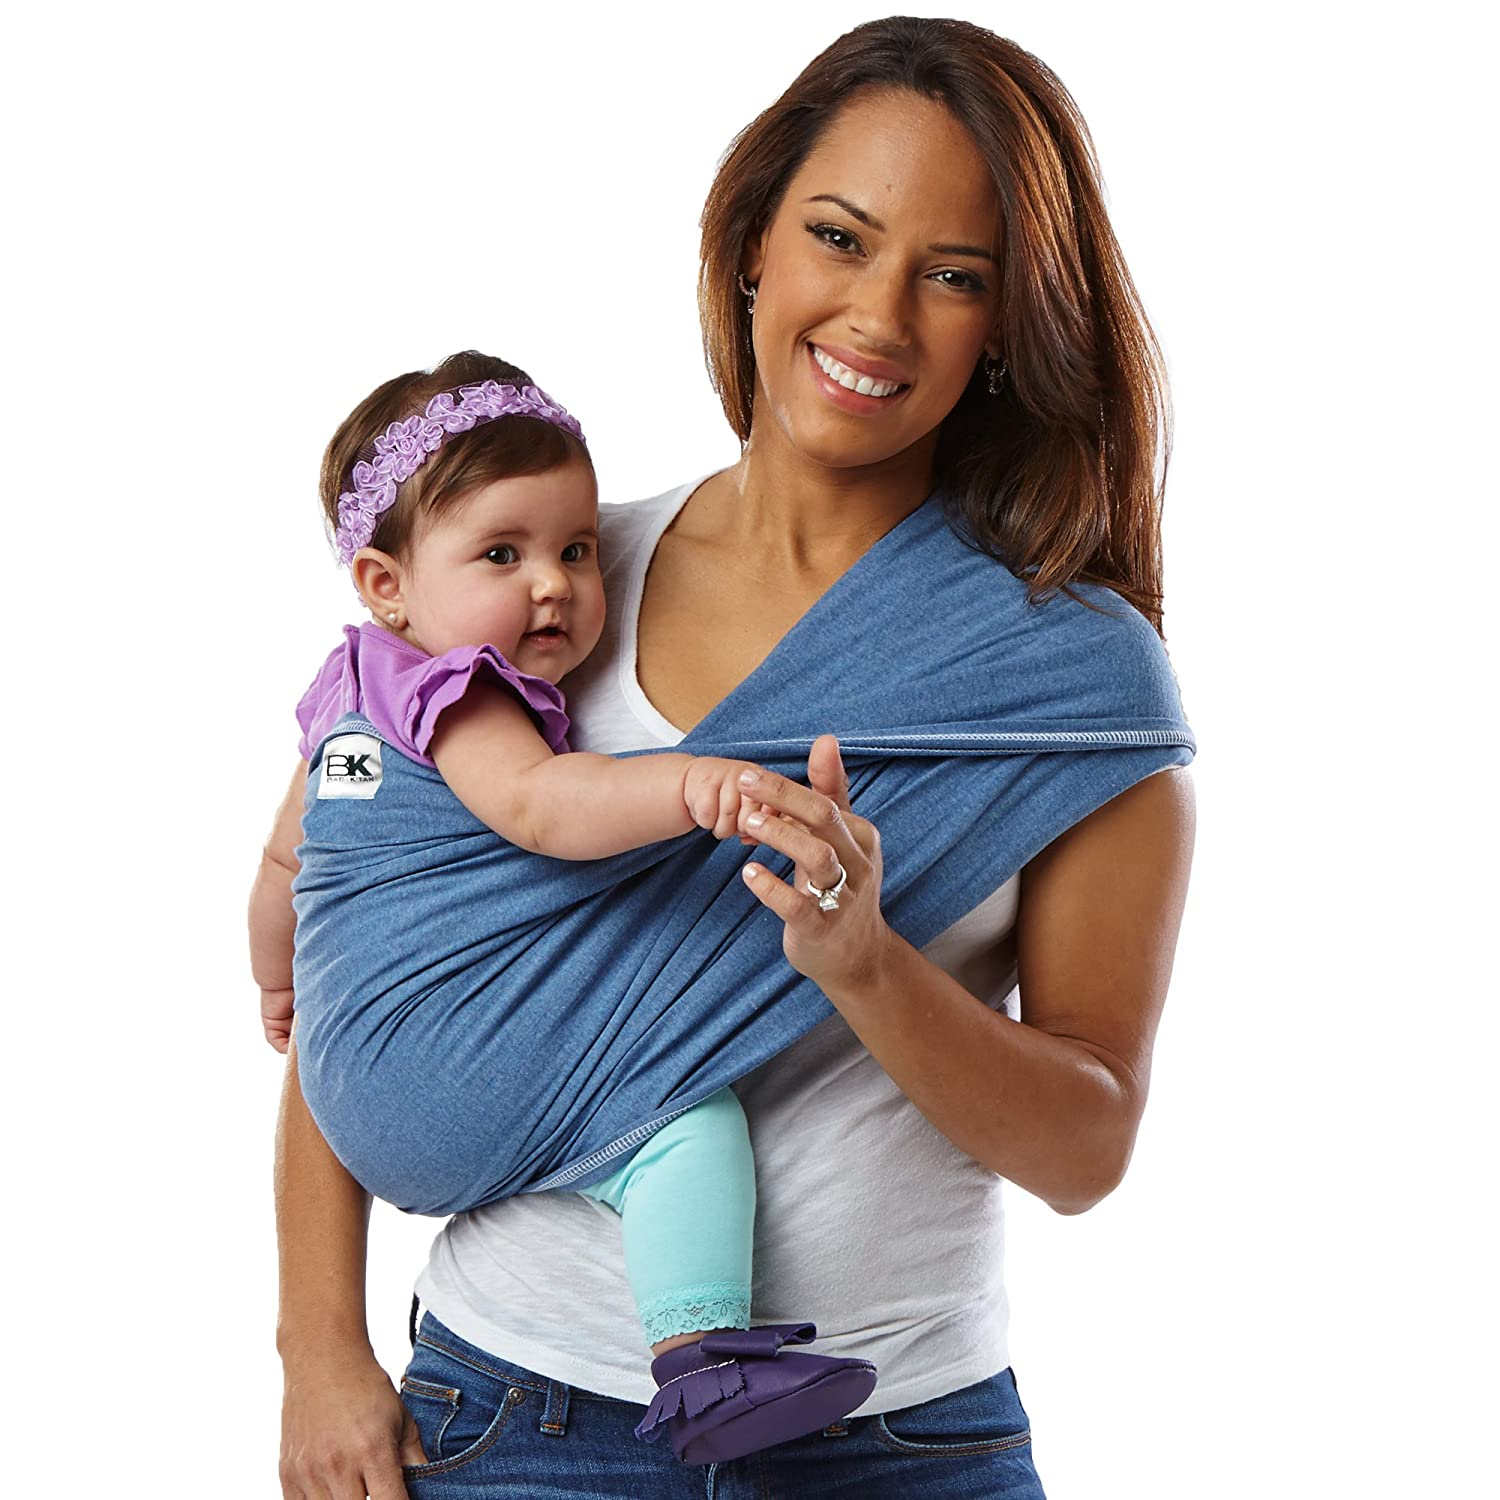 Baby K'tan Carrier Cotton (Medium, Denim) Baby K'tan BKBC-DM-M